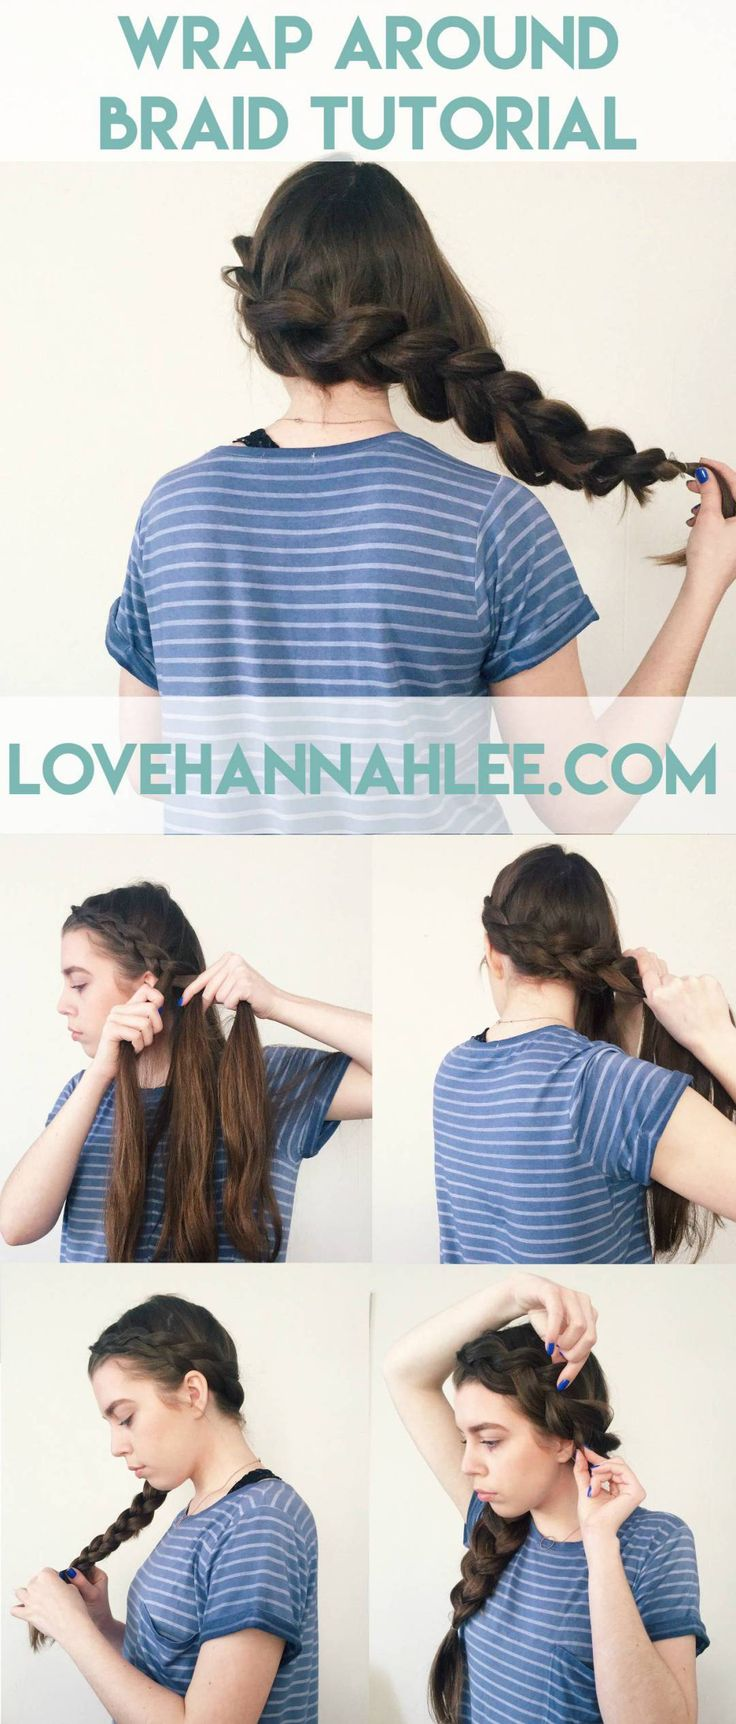 Wrap Around Braid Tutorial | Love, Hannah Lee by Hannah Martin